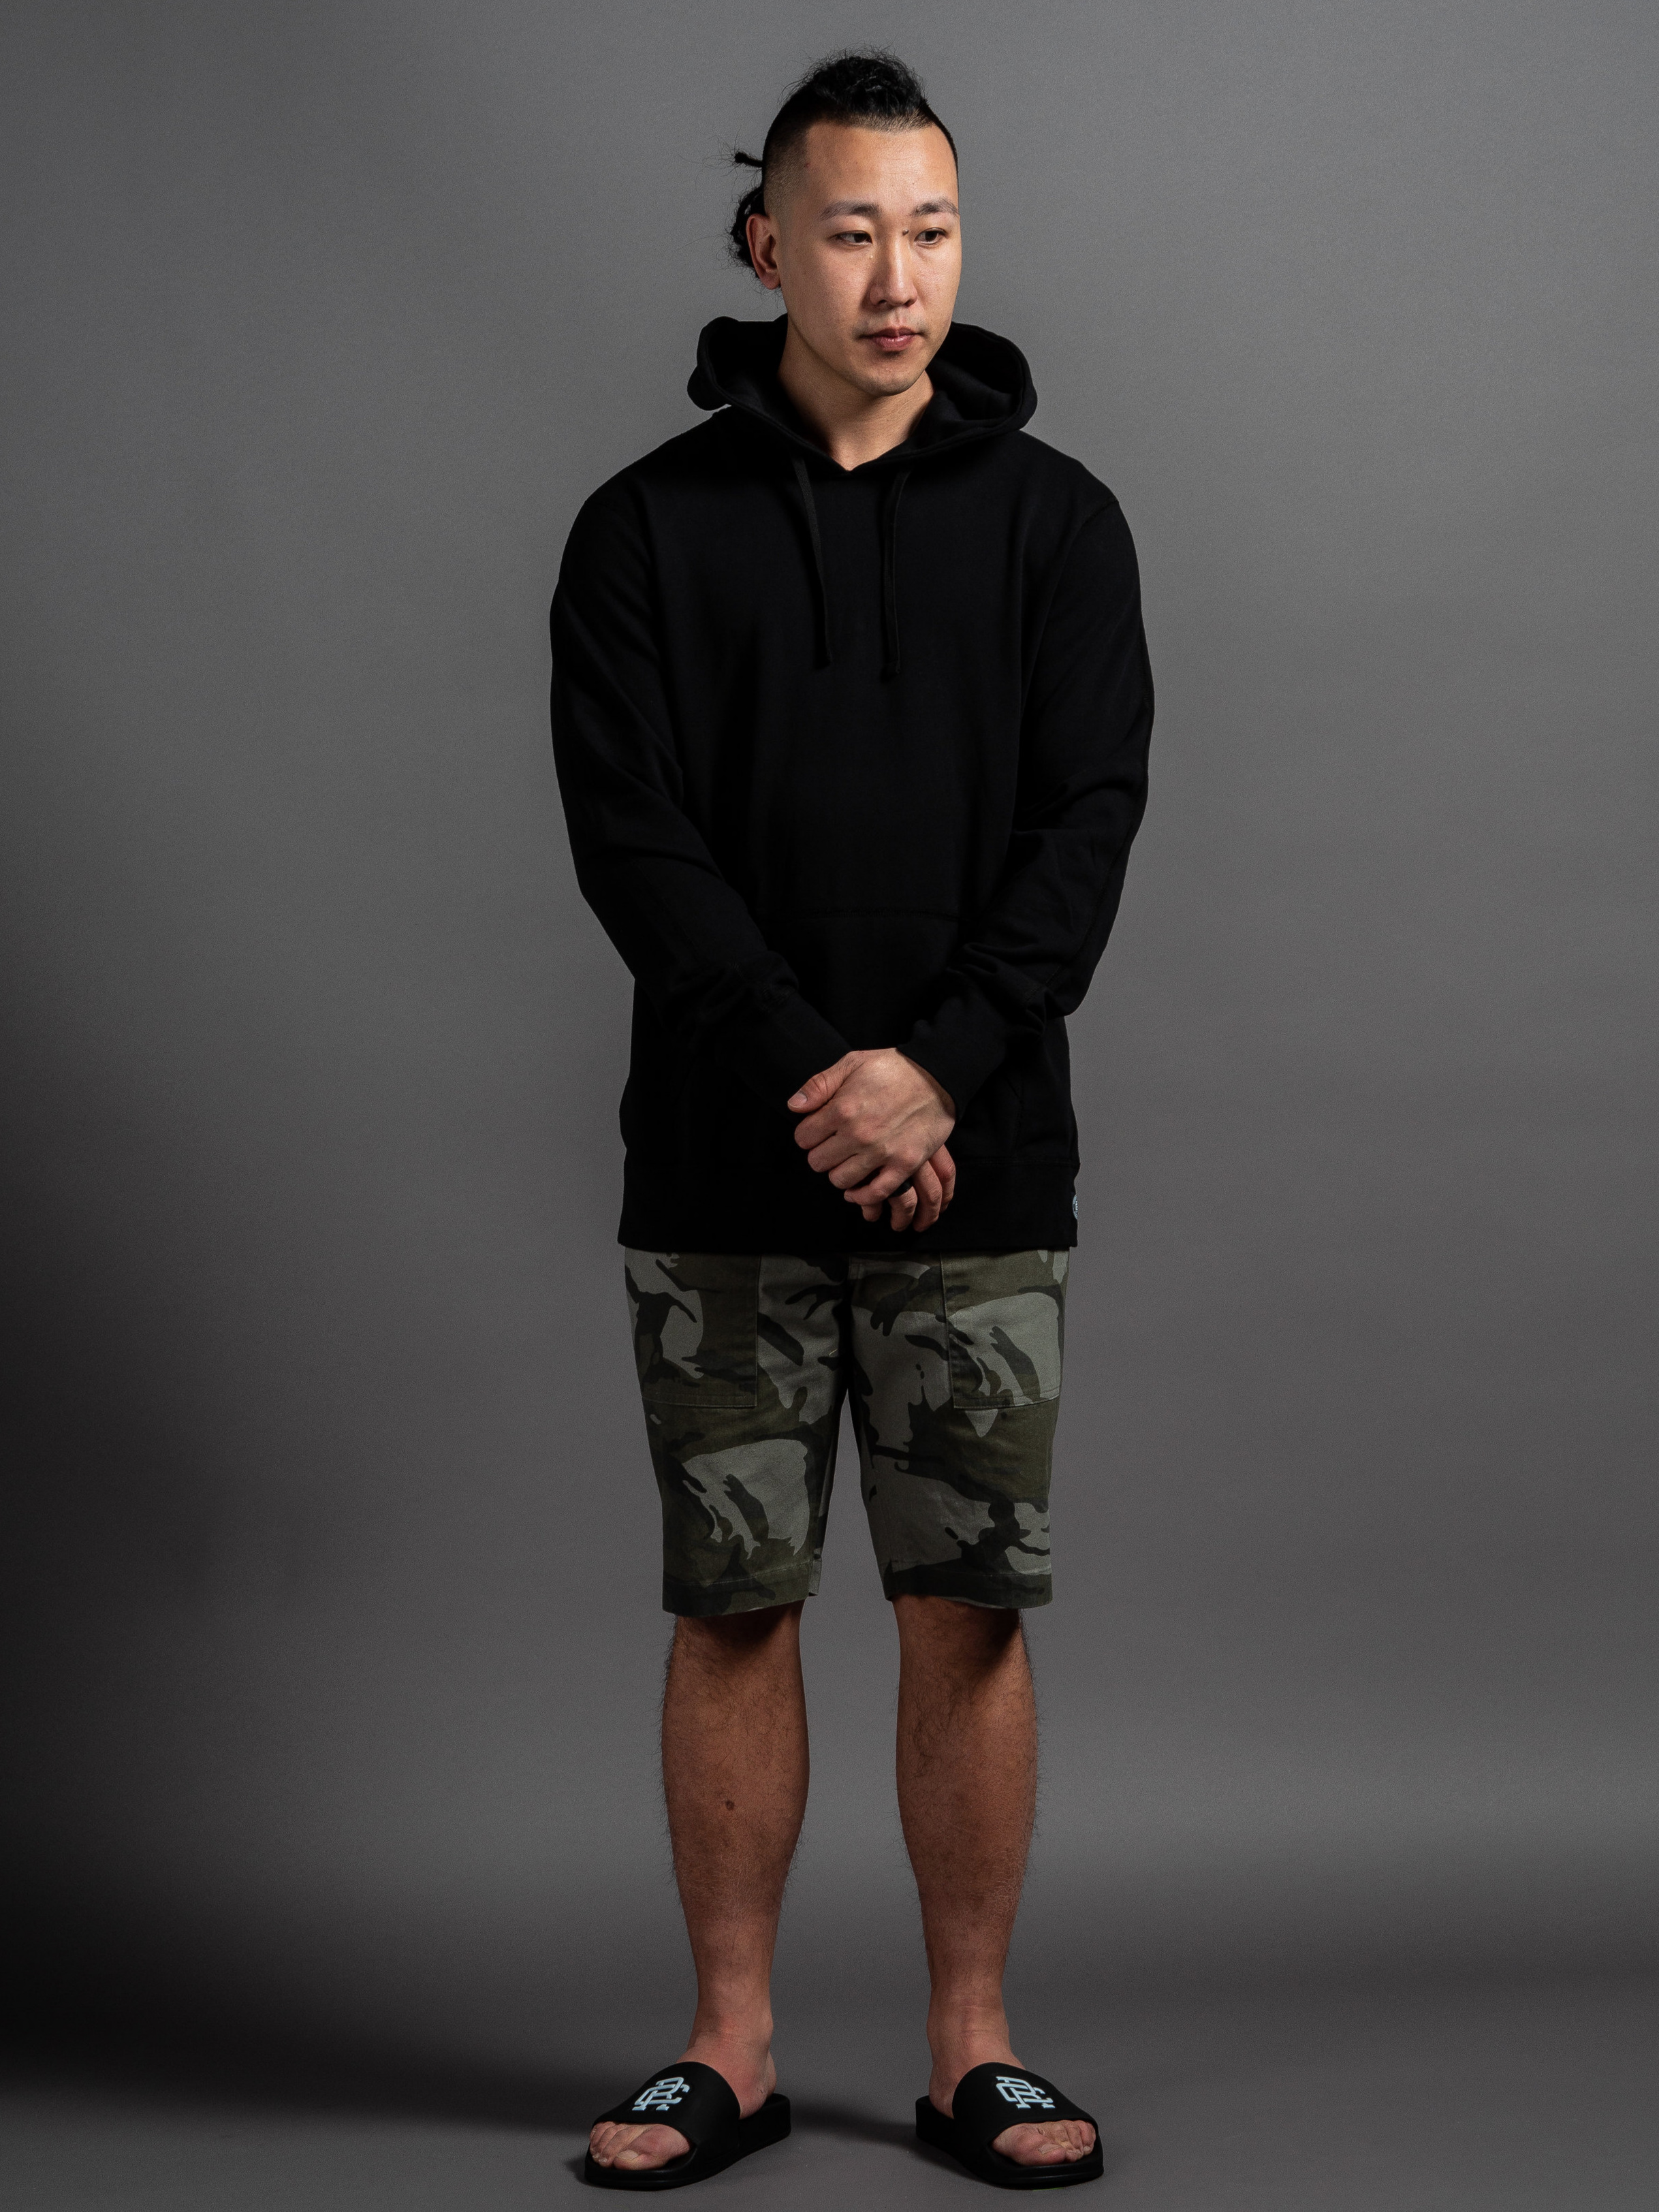 Reigning Champ Lightweight Pullover  Outclass Camouflage Safari Shorts  Reigning Champ Slides    SHOP THIS LOOK